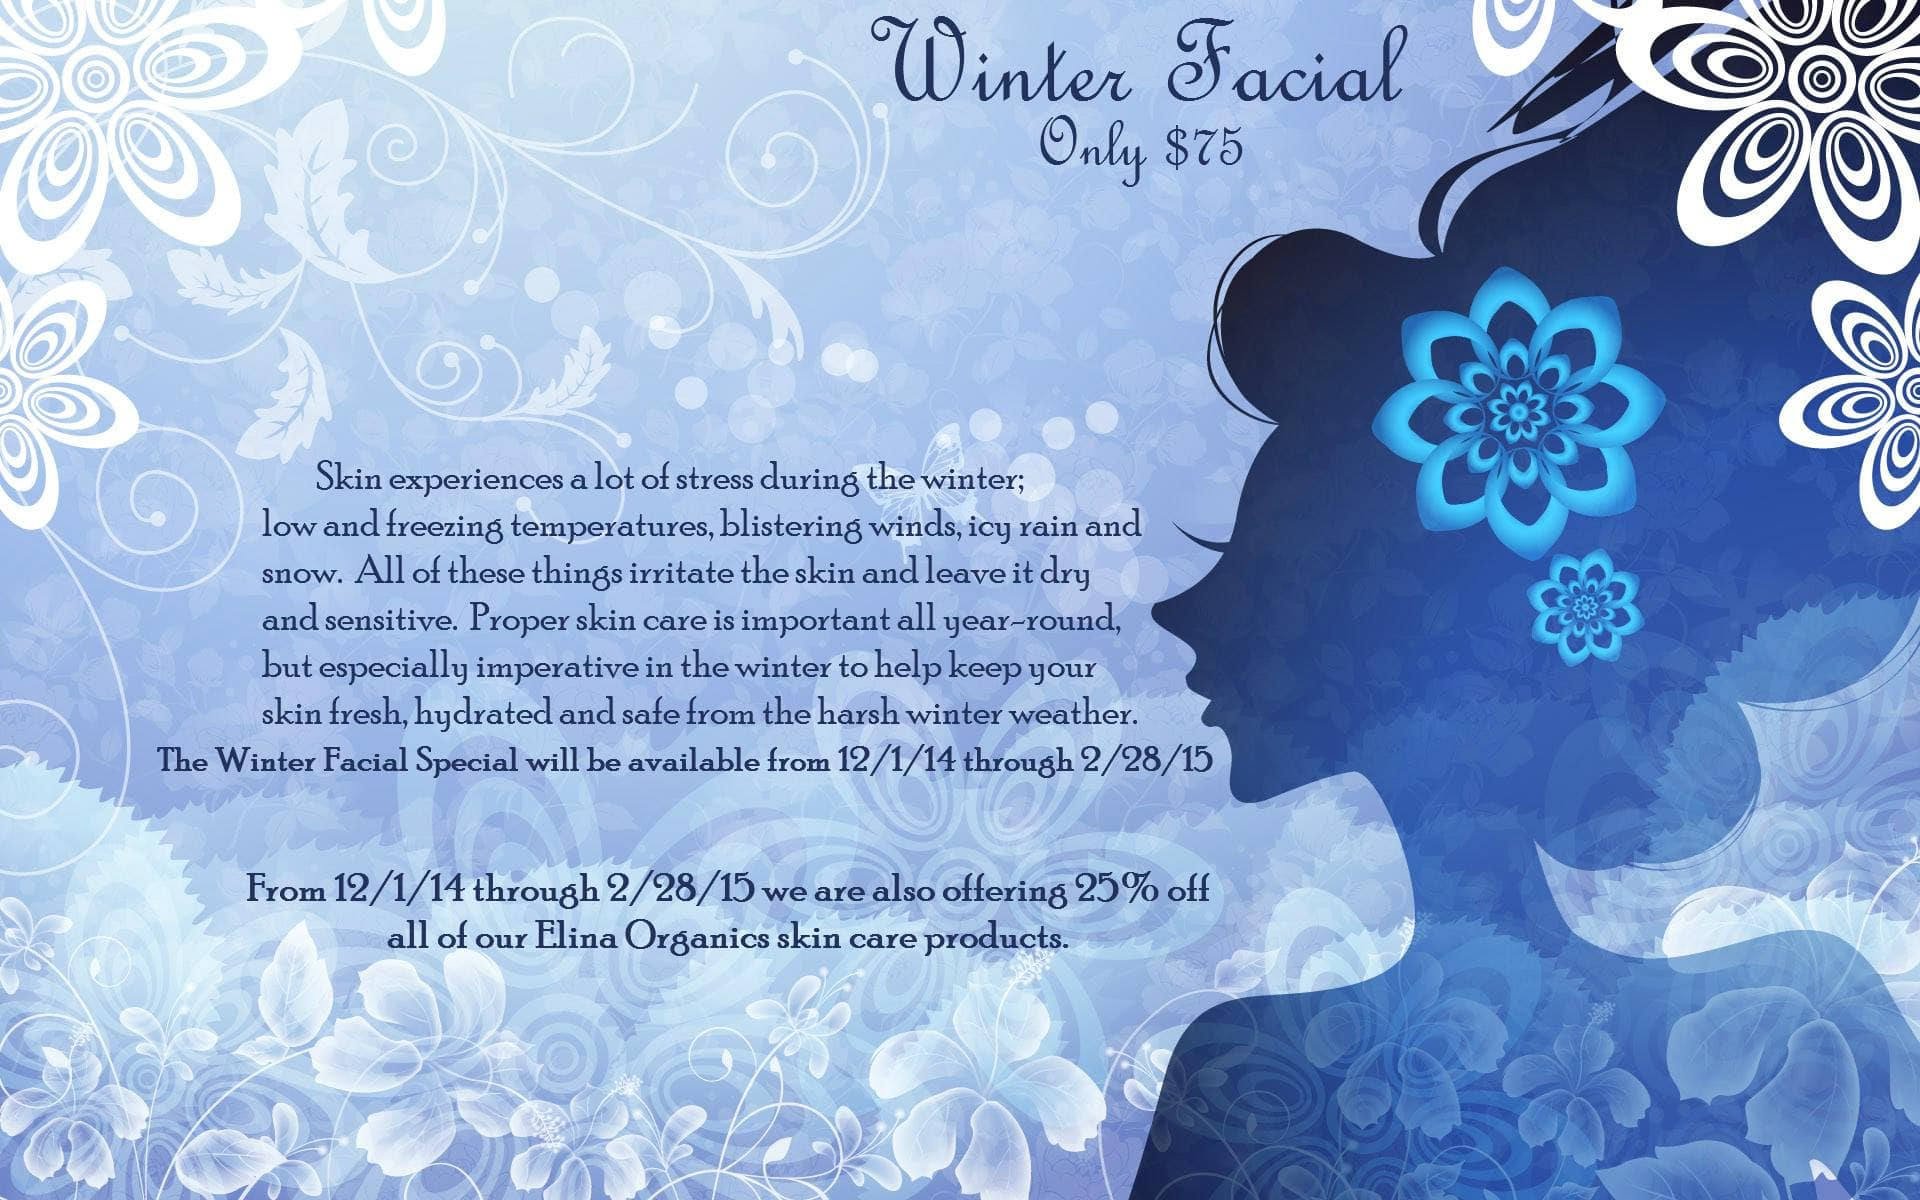 Winter Facial 10863798 321716844682763 8818821443578833537 o